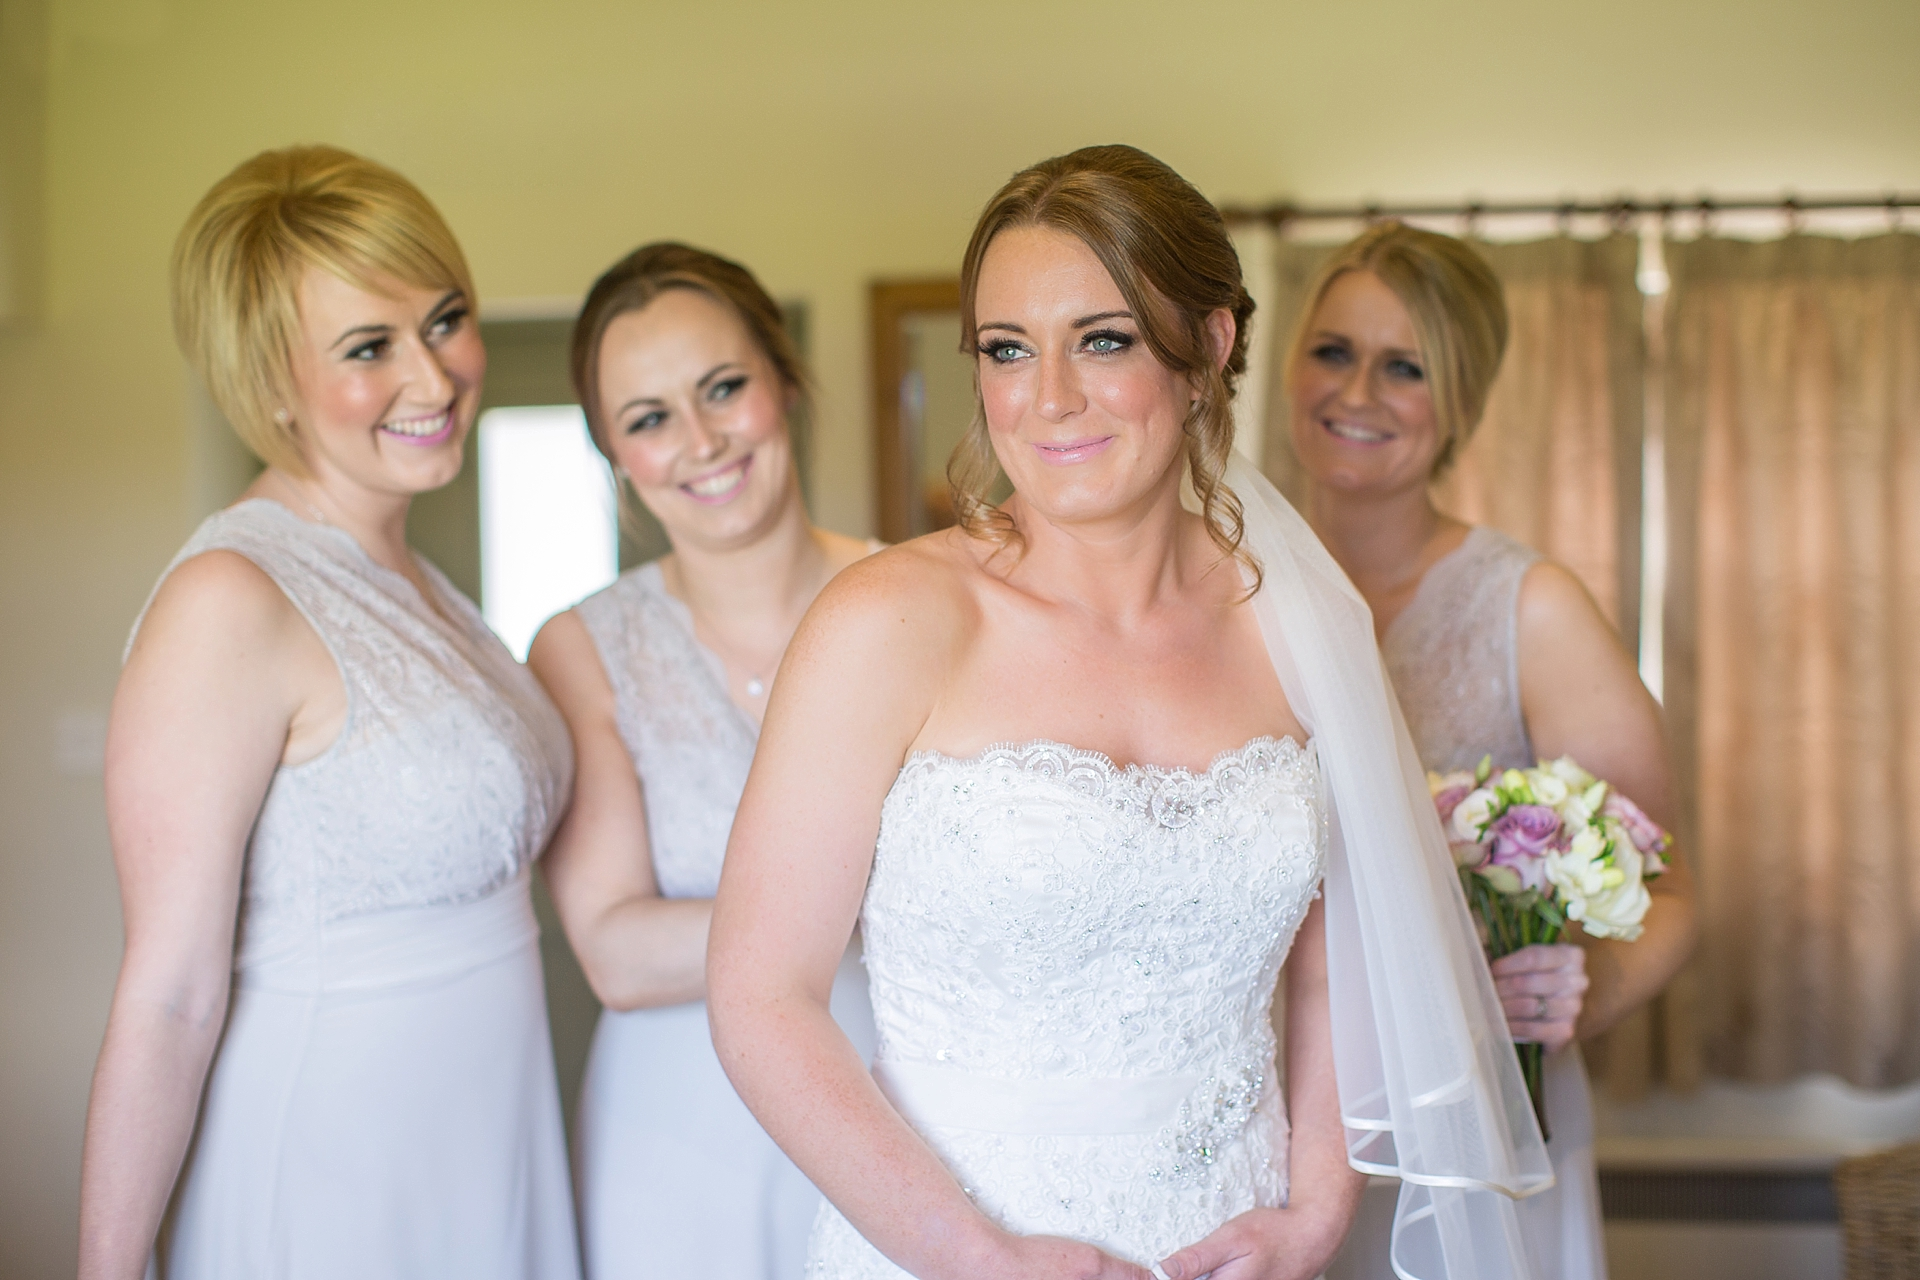 wedding photographer stoke on trent the ashes endon 5.jpg